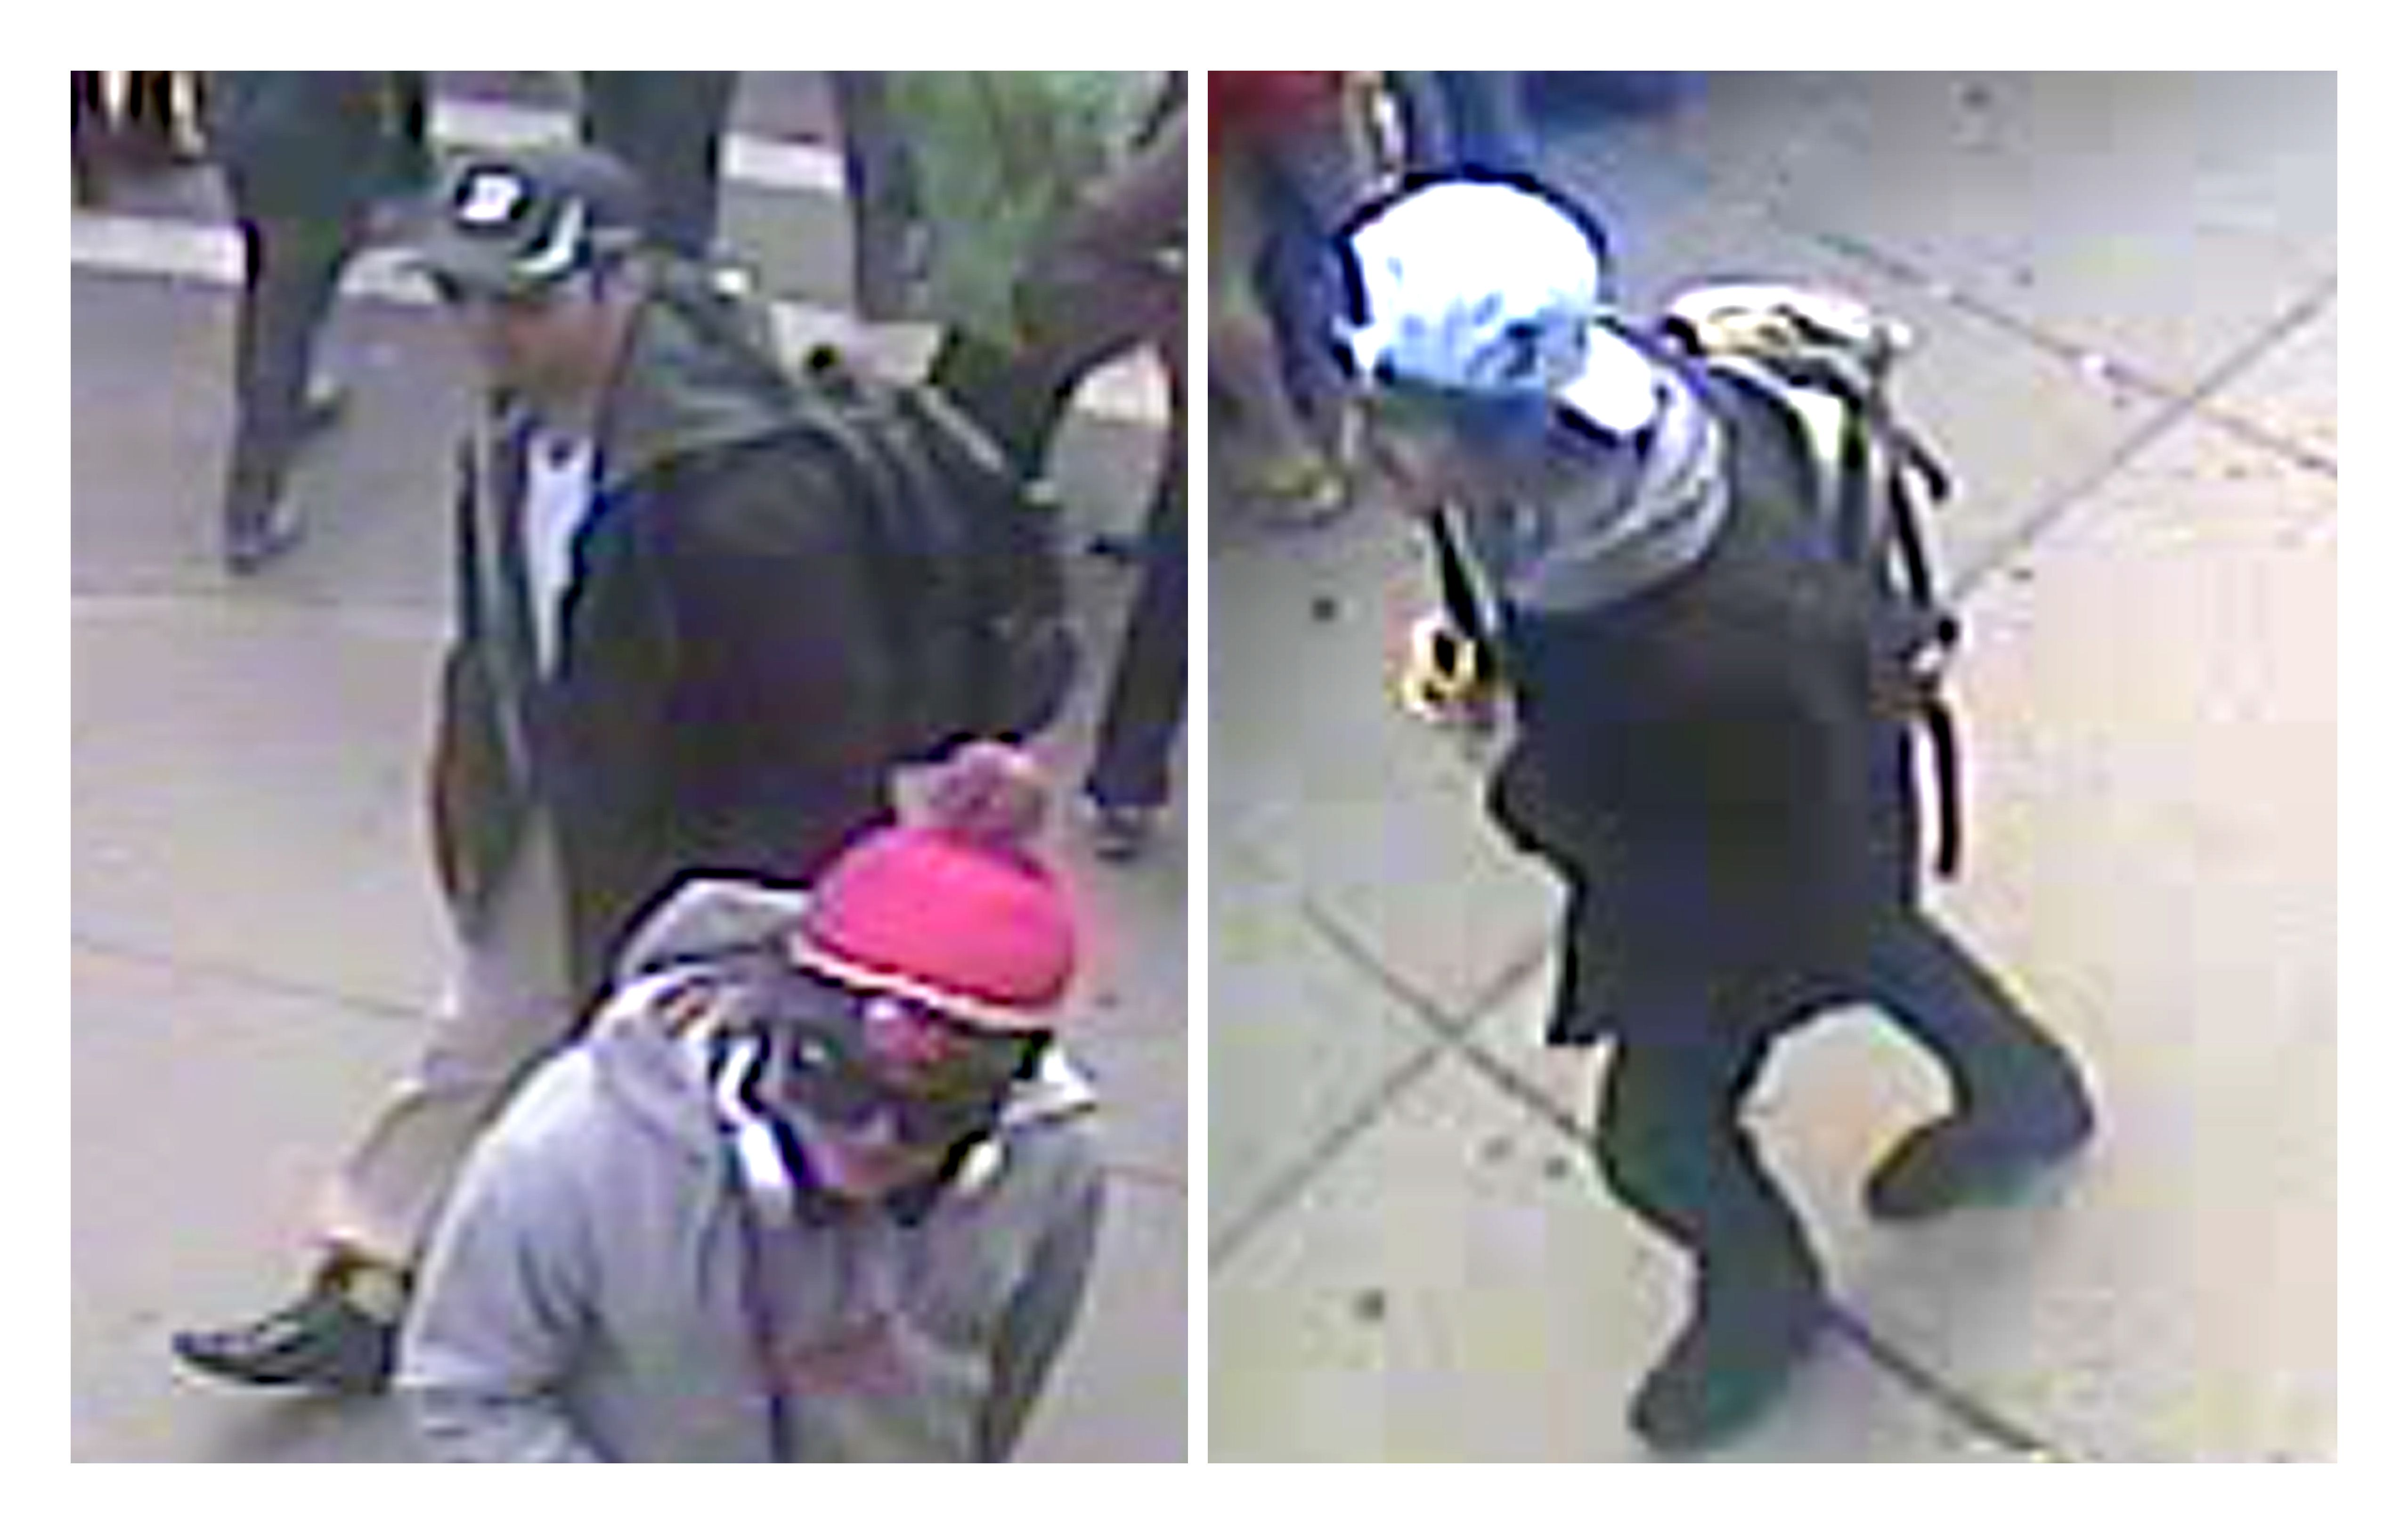 Caught on film: These video stills released Thursday by the FBI show the two Boston bombing suspects, one in a black baseball cap and the other in a white cap, walking along the route of the marathon Monday. Investigators consider the two men to be 'armed and extremely dangerous,' said Rick DesLauriers, FBI chief in Boston. The bureau has no details yet of the suspects' identities, origin or motive. | AFP-JIJI